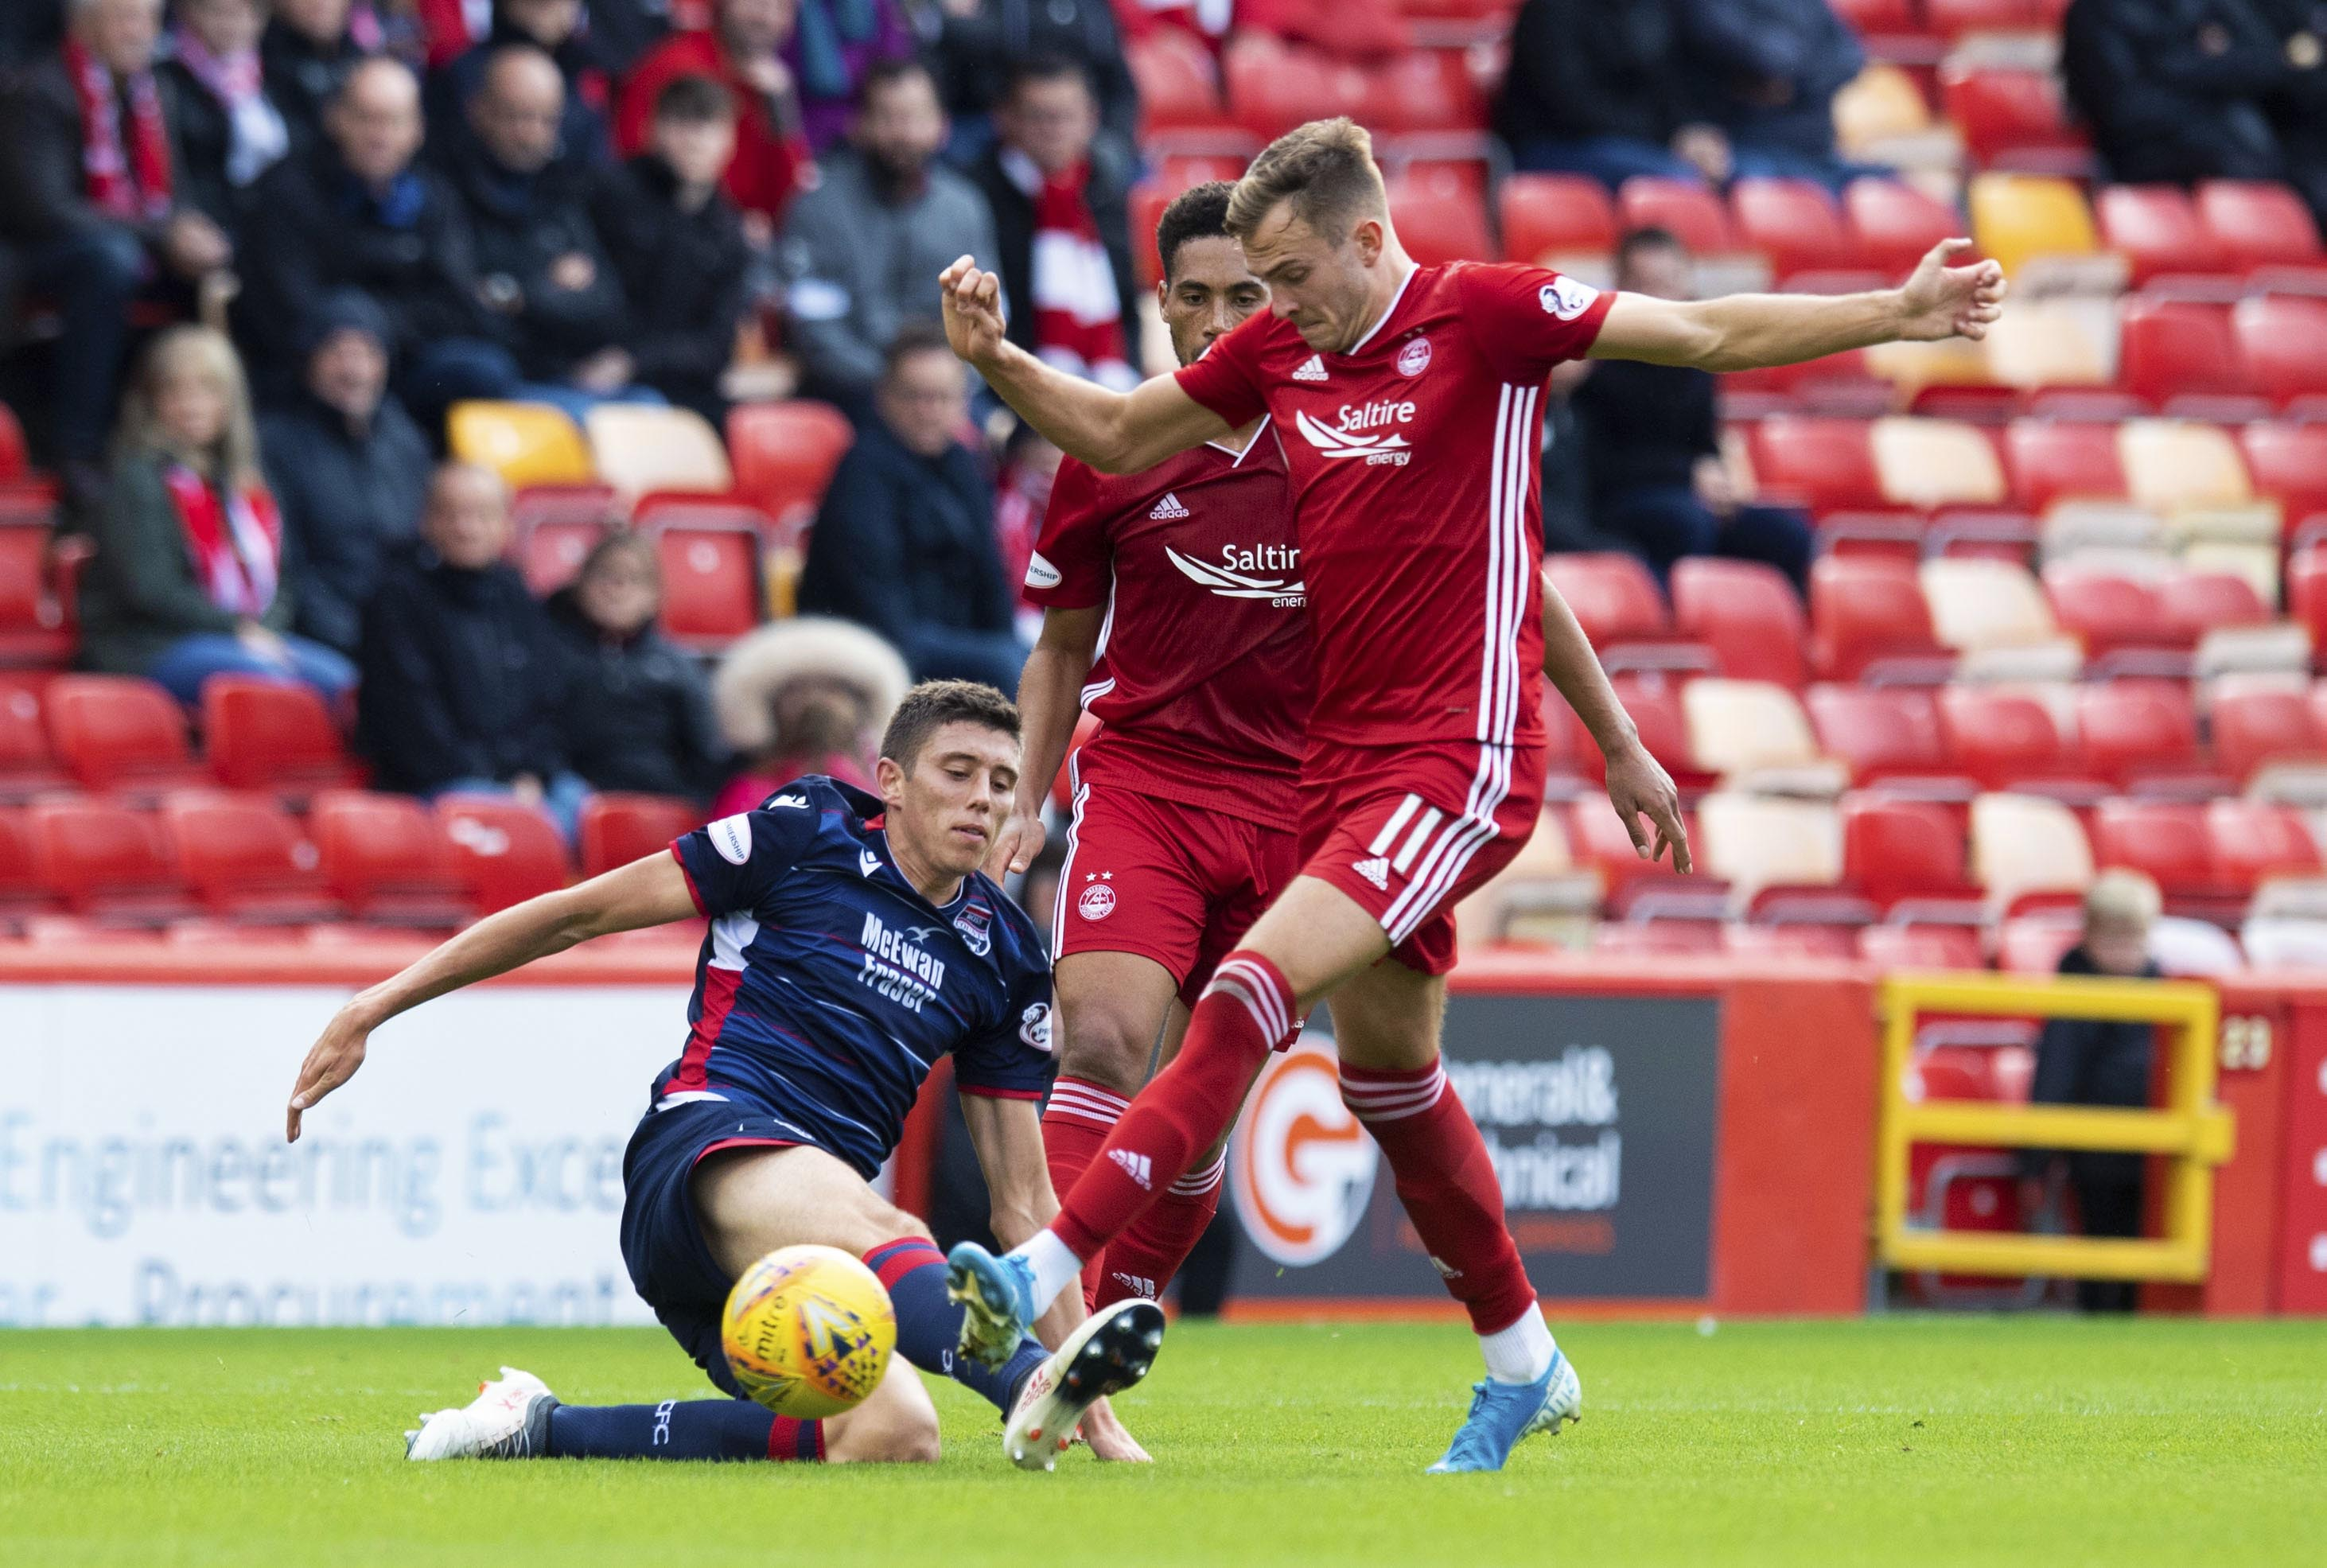 Aberdeen's Ryan Hedges, right, tackles Ross Stewart during the Ladbrokes Premiership match between Aberdeen and Ross County at Pittodrie Stadium.